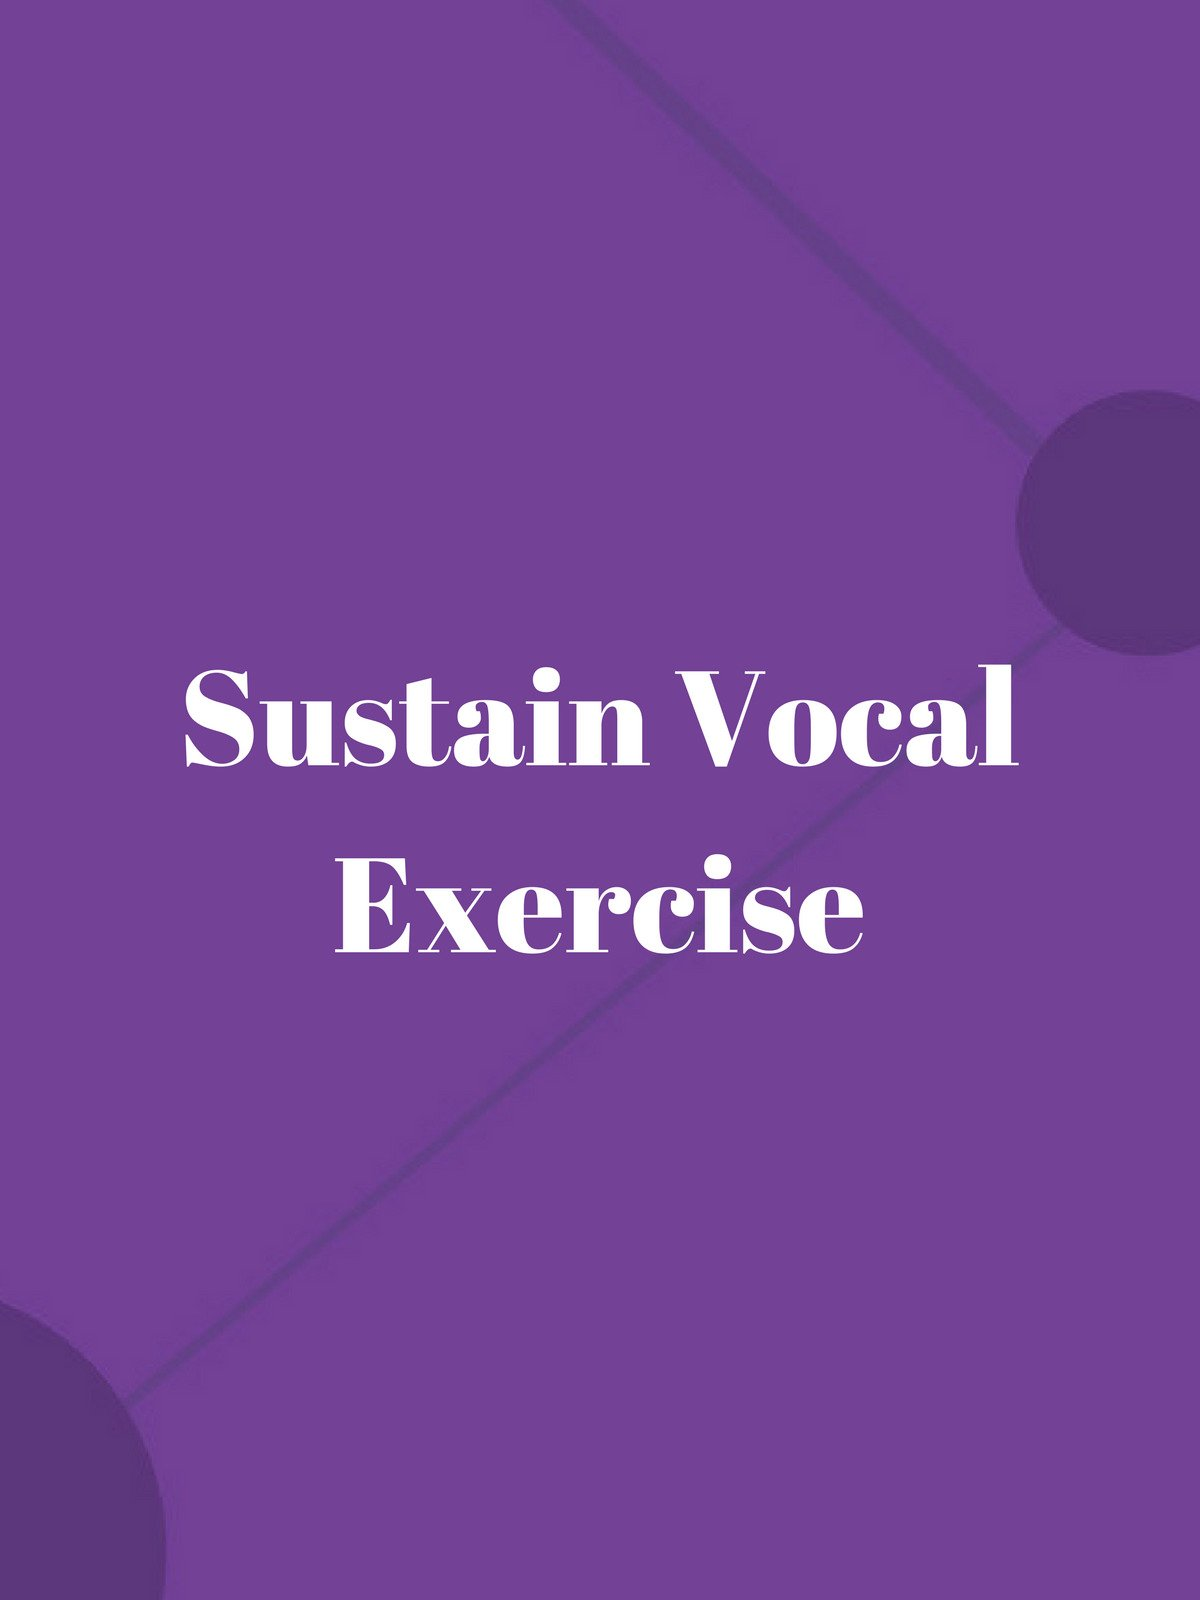 Sustain Vocal Exercise